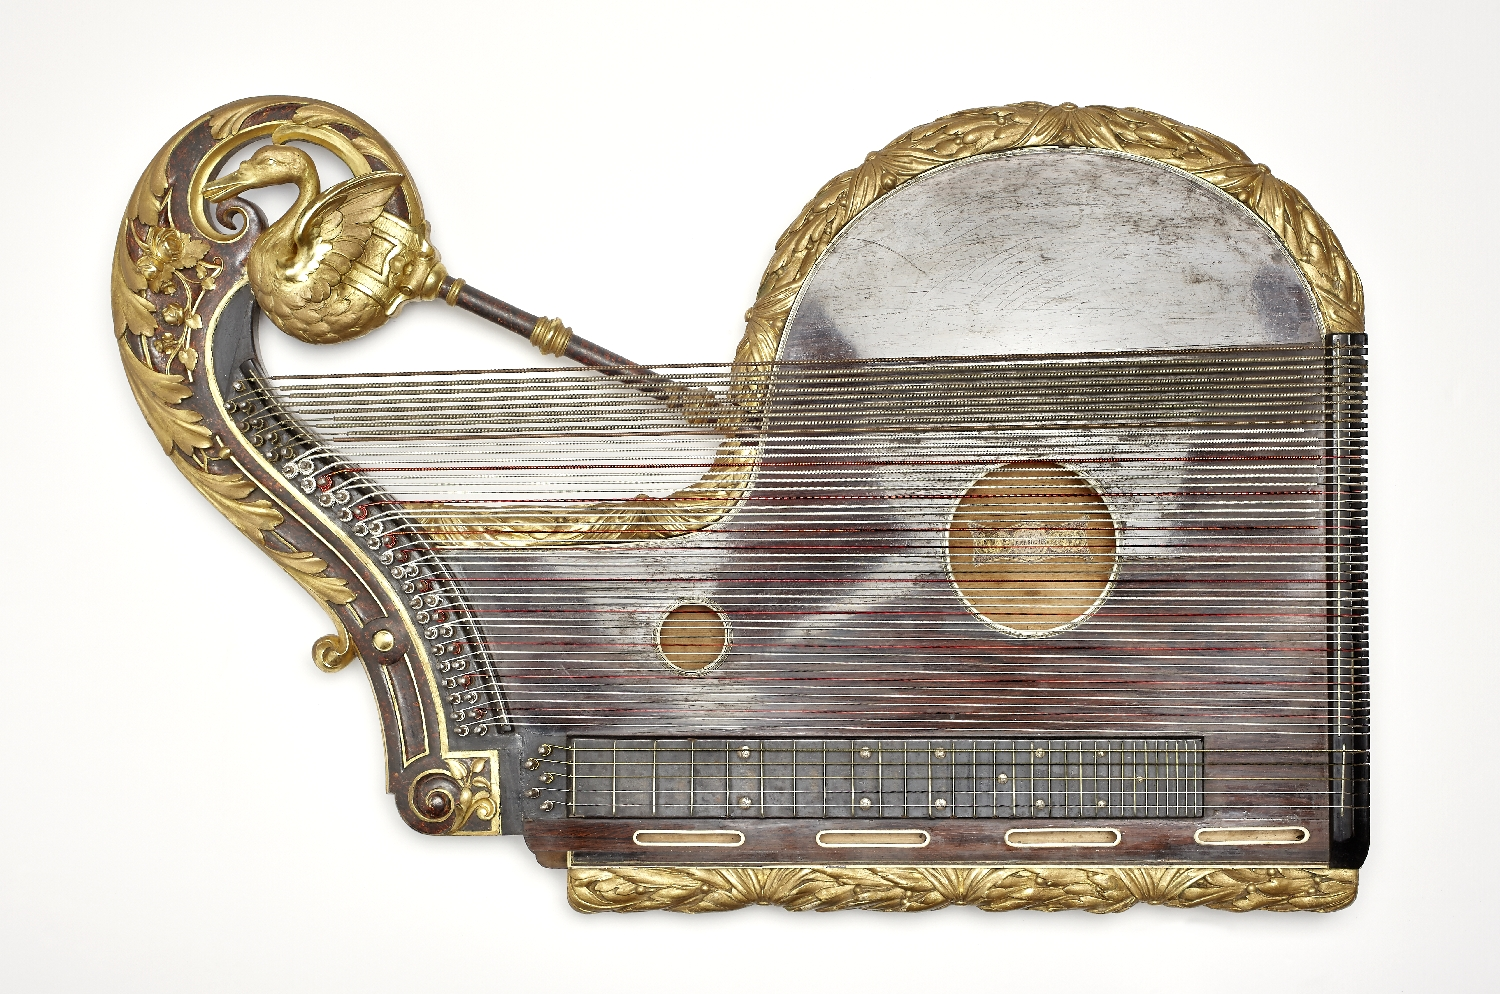 Ornamental harp zither owned by Joseph Achleitner, Kammervirtuose of Otto I of Greece, Ignaz Johann Bucher, Vienna, ca. 1860, fir, rosewood, veneered, inv. no. MI 1368